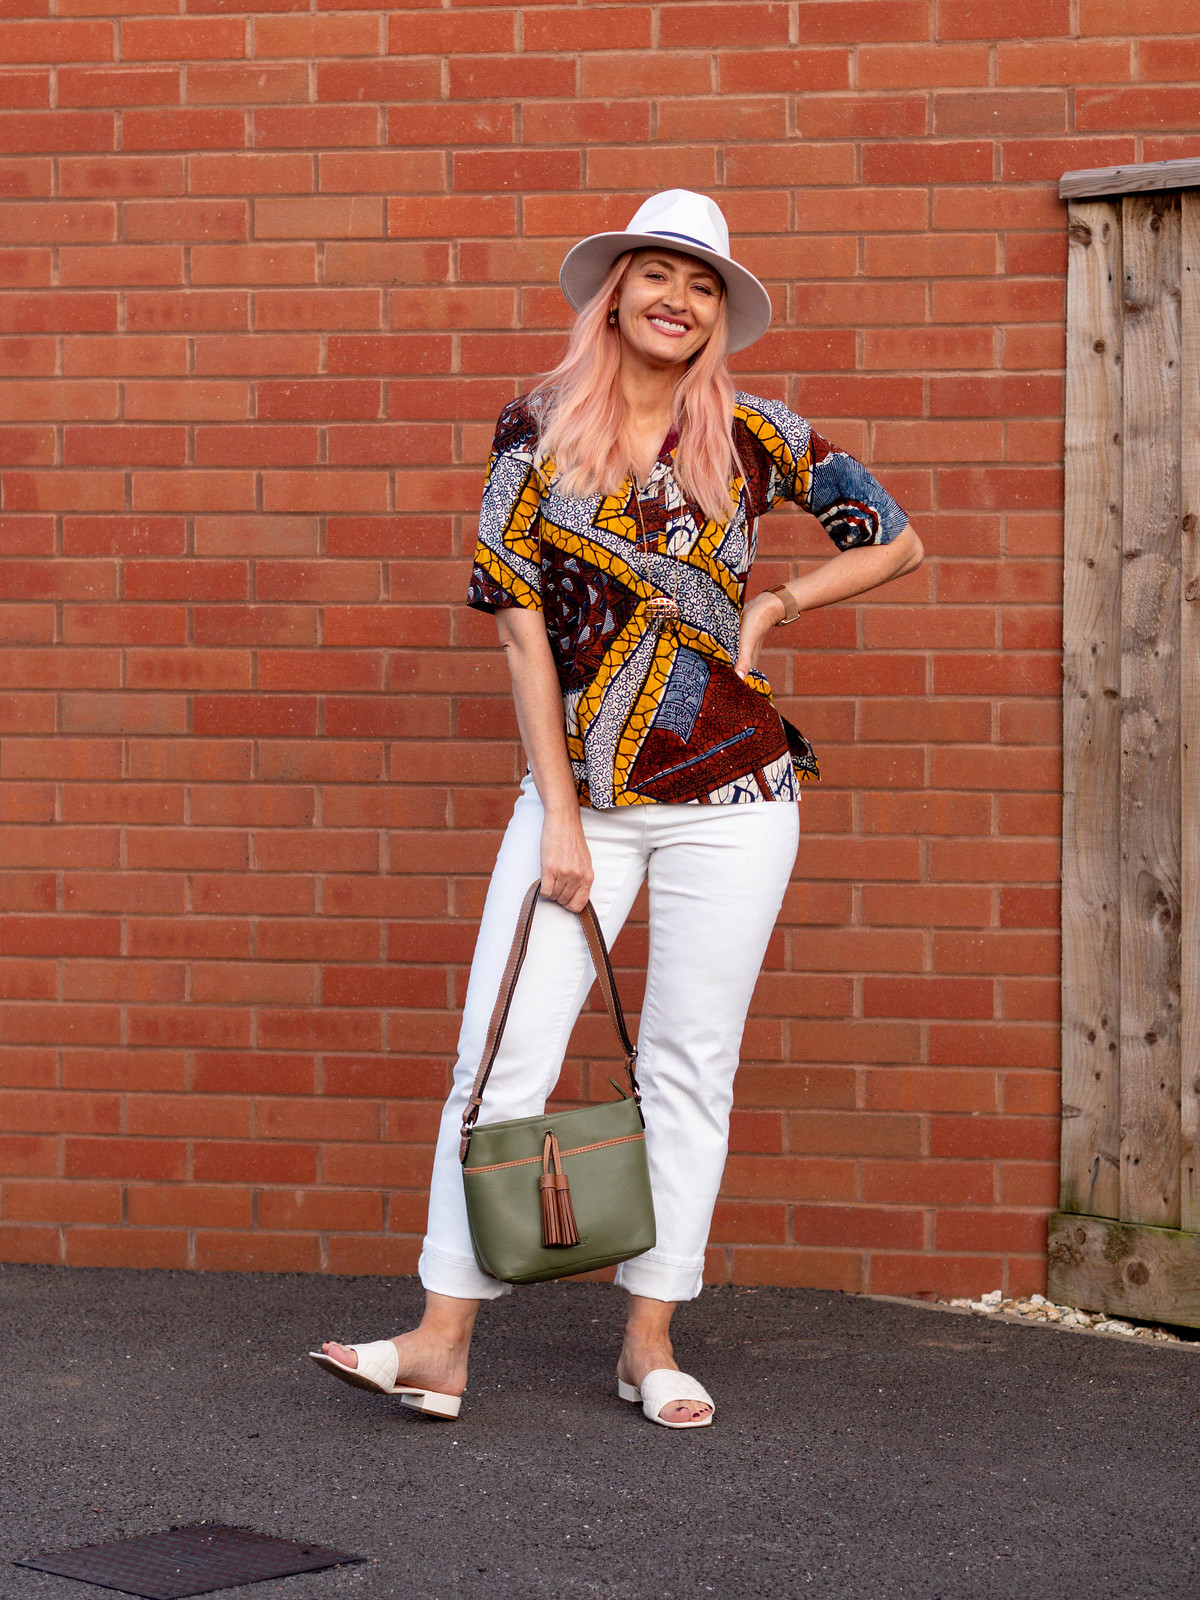 Ditching White Skinny Jeans For White Straight Leg Jeans: Catherine Summers AKA Not Dressed As Lamb wearing brown, yellow and navy vintage batik shirt, white jeans, white sandals, white cotton fedora with navy trim, olive Osprey London shoulder bag